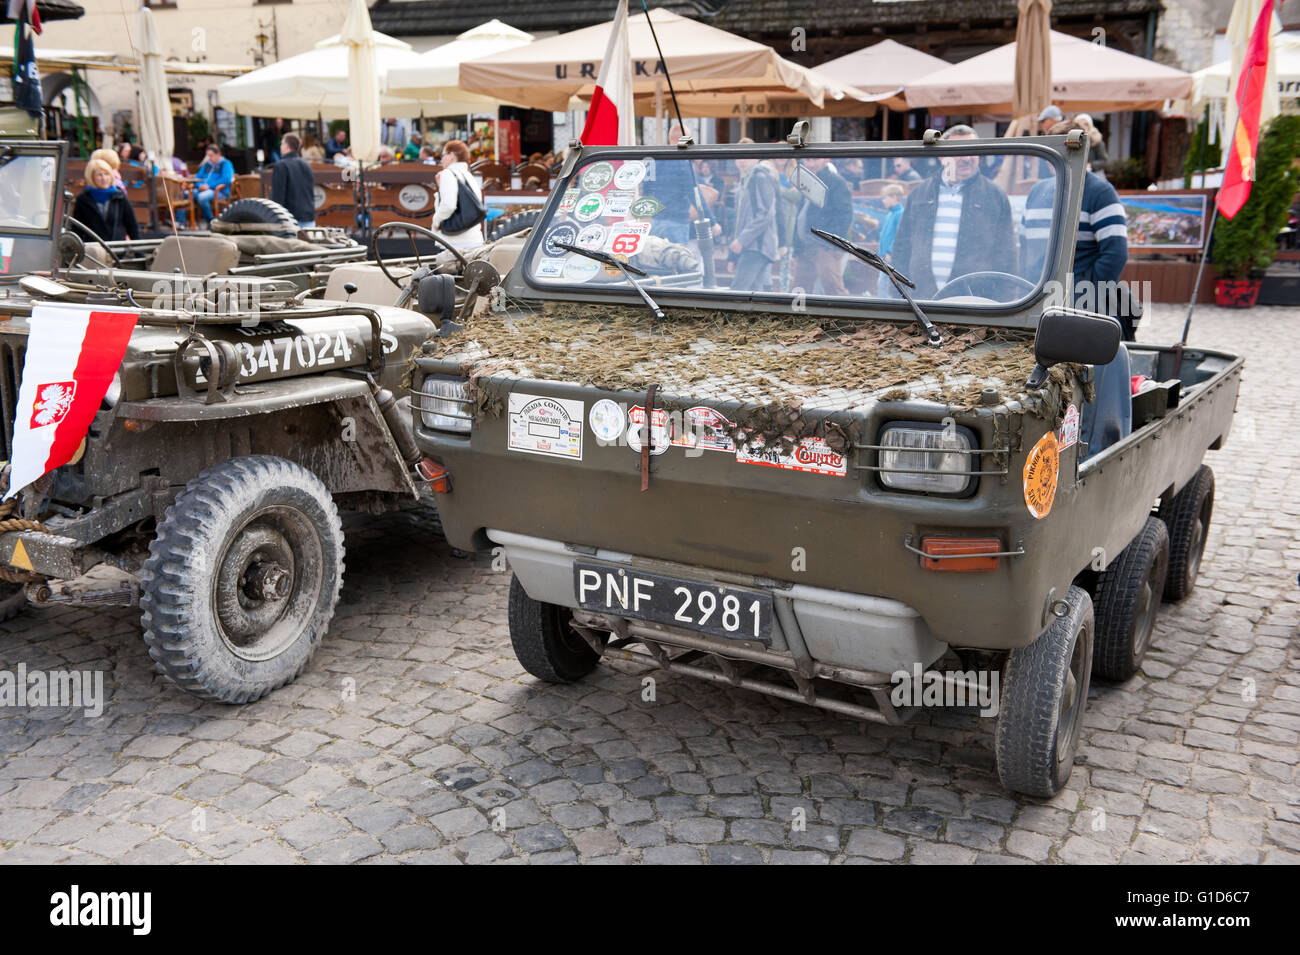 Army cars at Rally VI military vehicles from World War II in Kazimierz Dolny, antique cars event at the Market square, - Stock Image